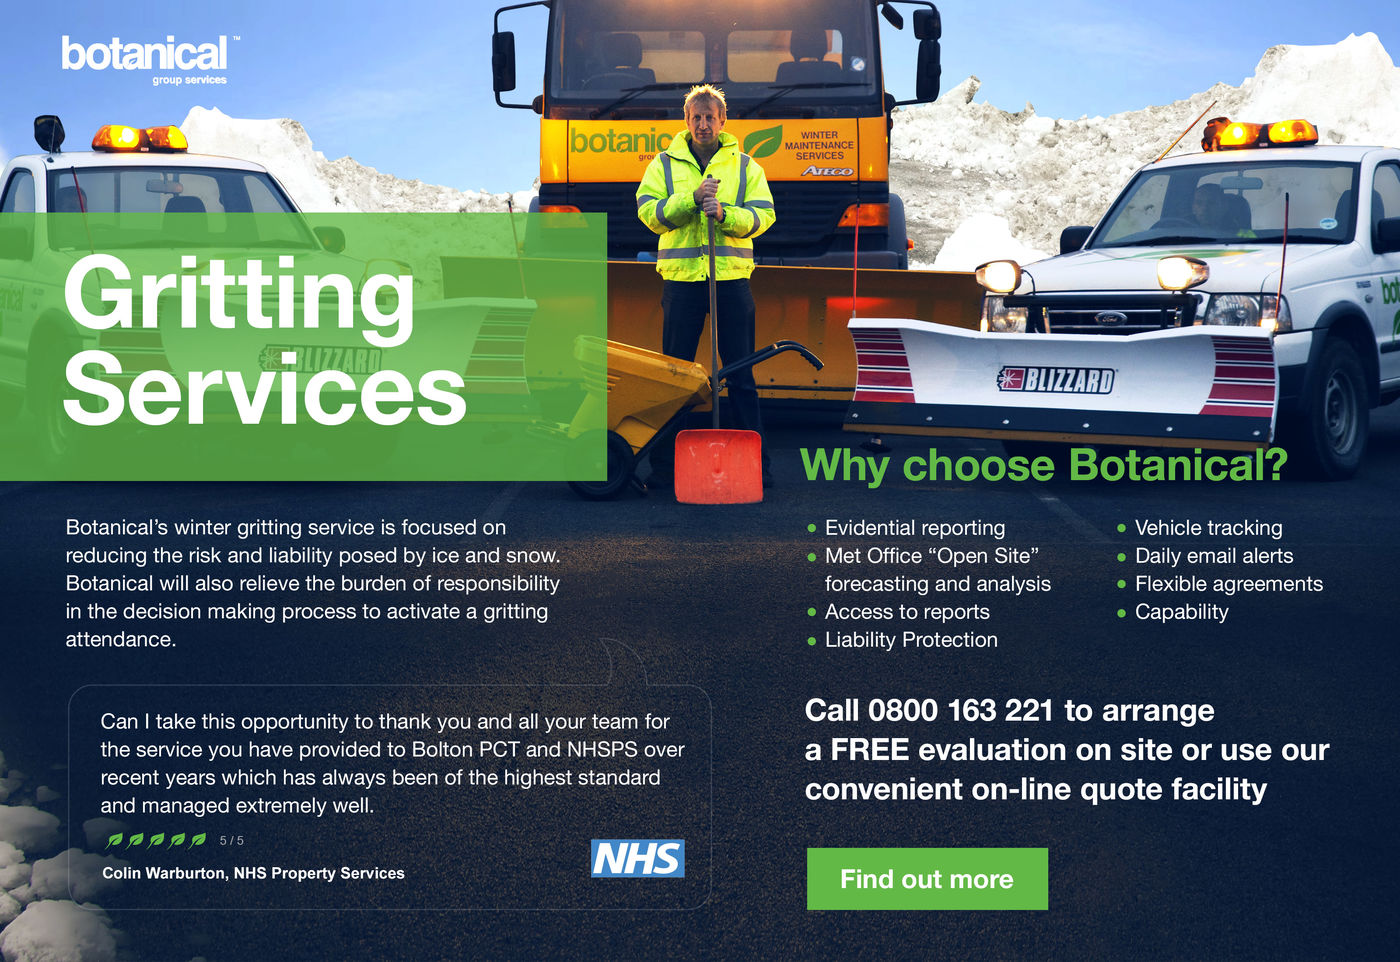 Botanical Group Services Gritting Services